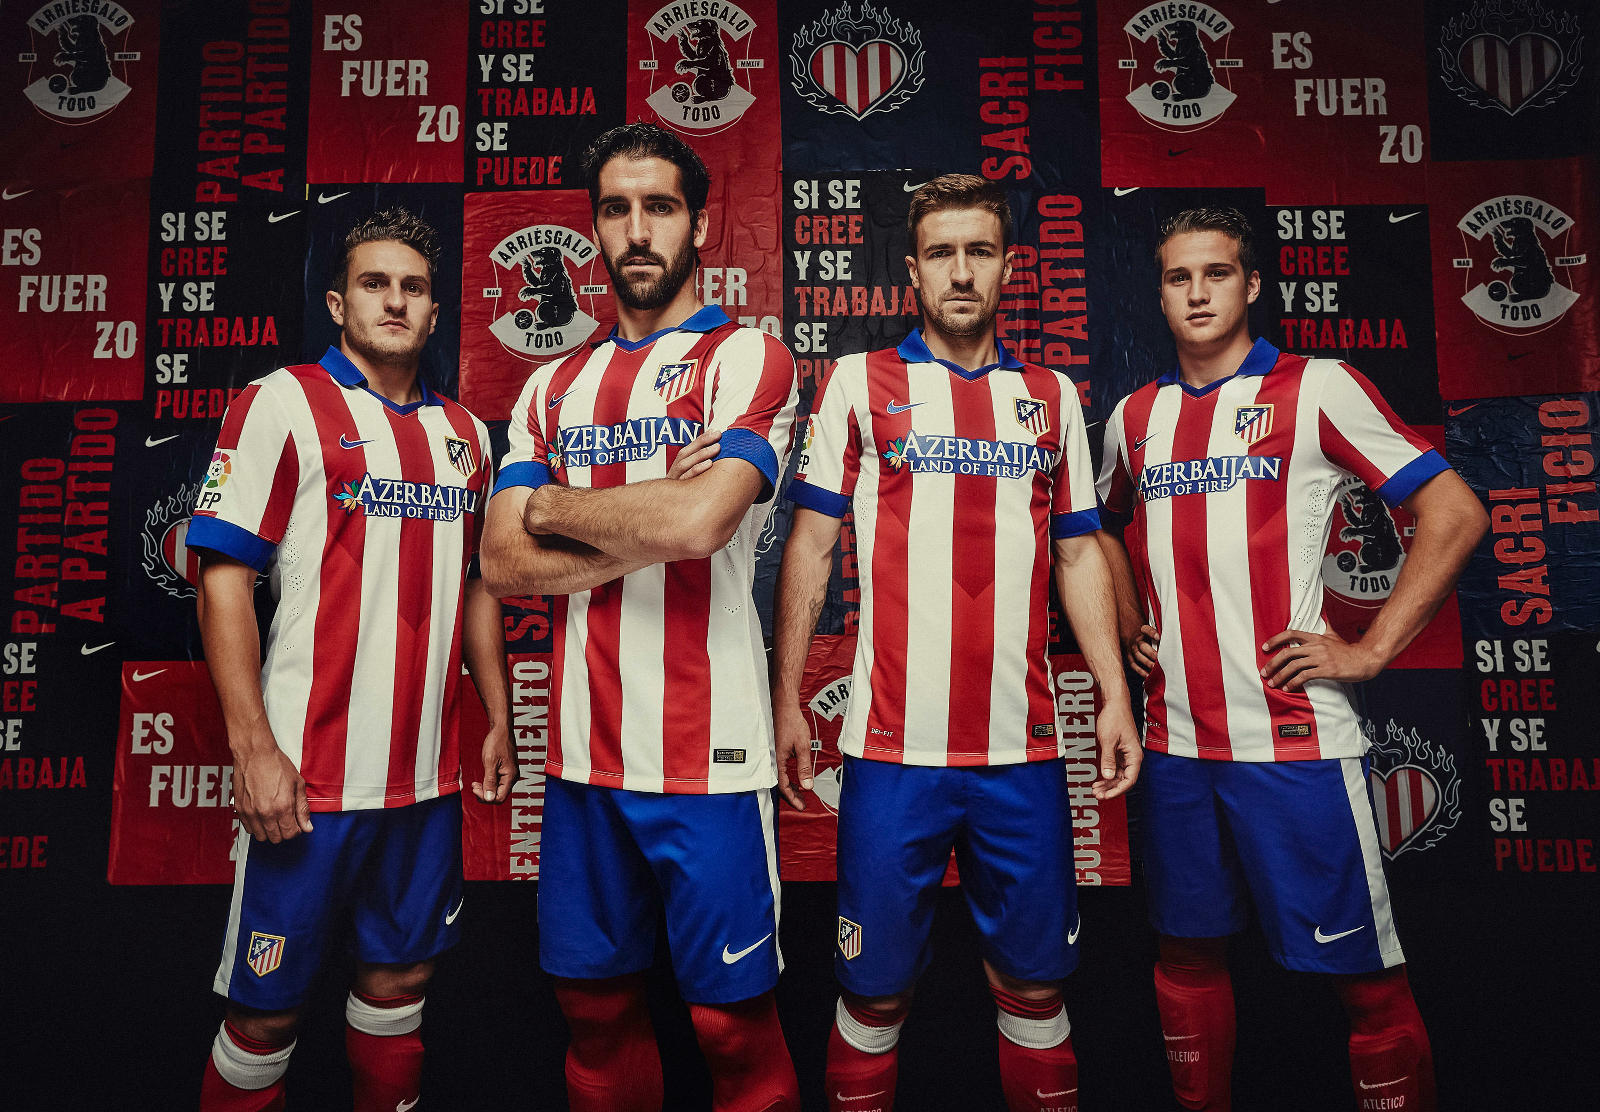 Atletico-Madrid-14-15-Home-Kit+(1).jpg